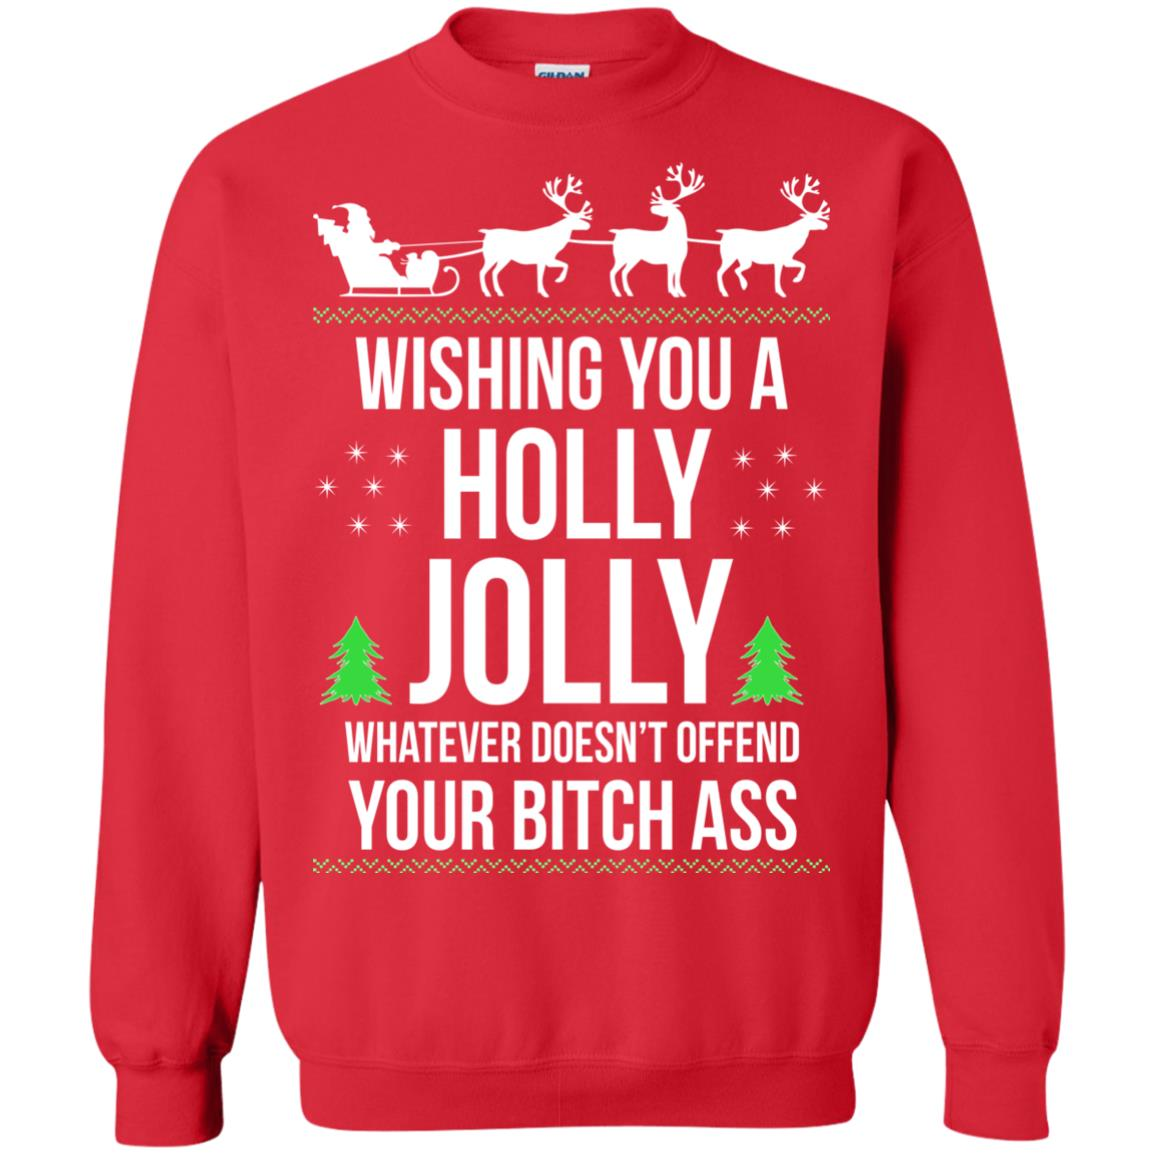 image 1190 - Wishing you a holly jolly whatever doesn't offend your bitch ass sweater, shirt